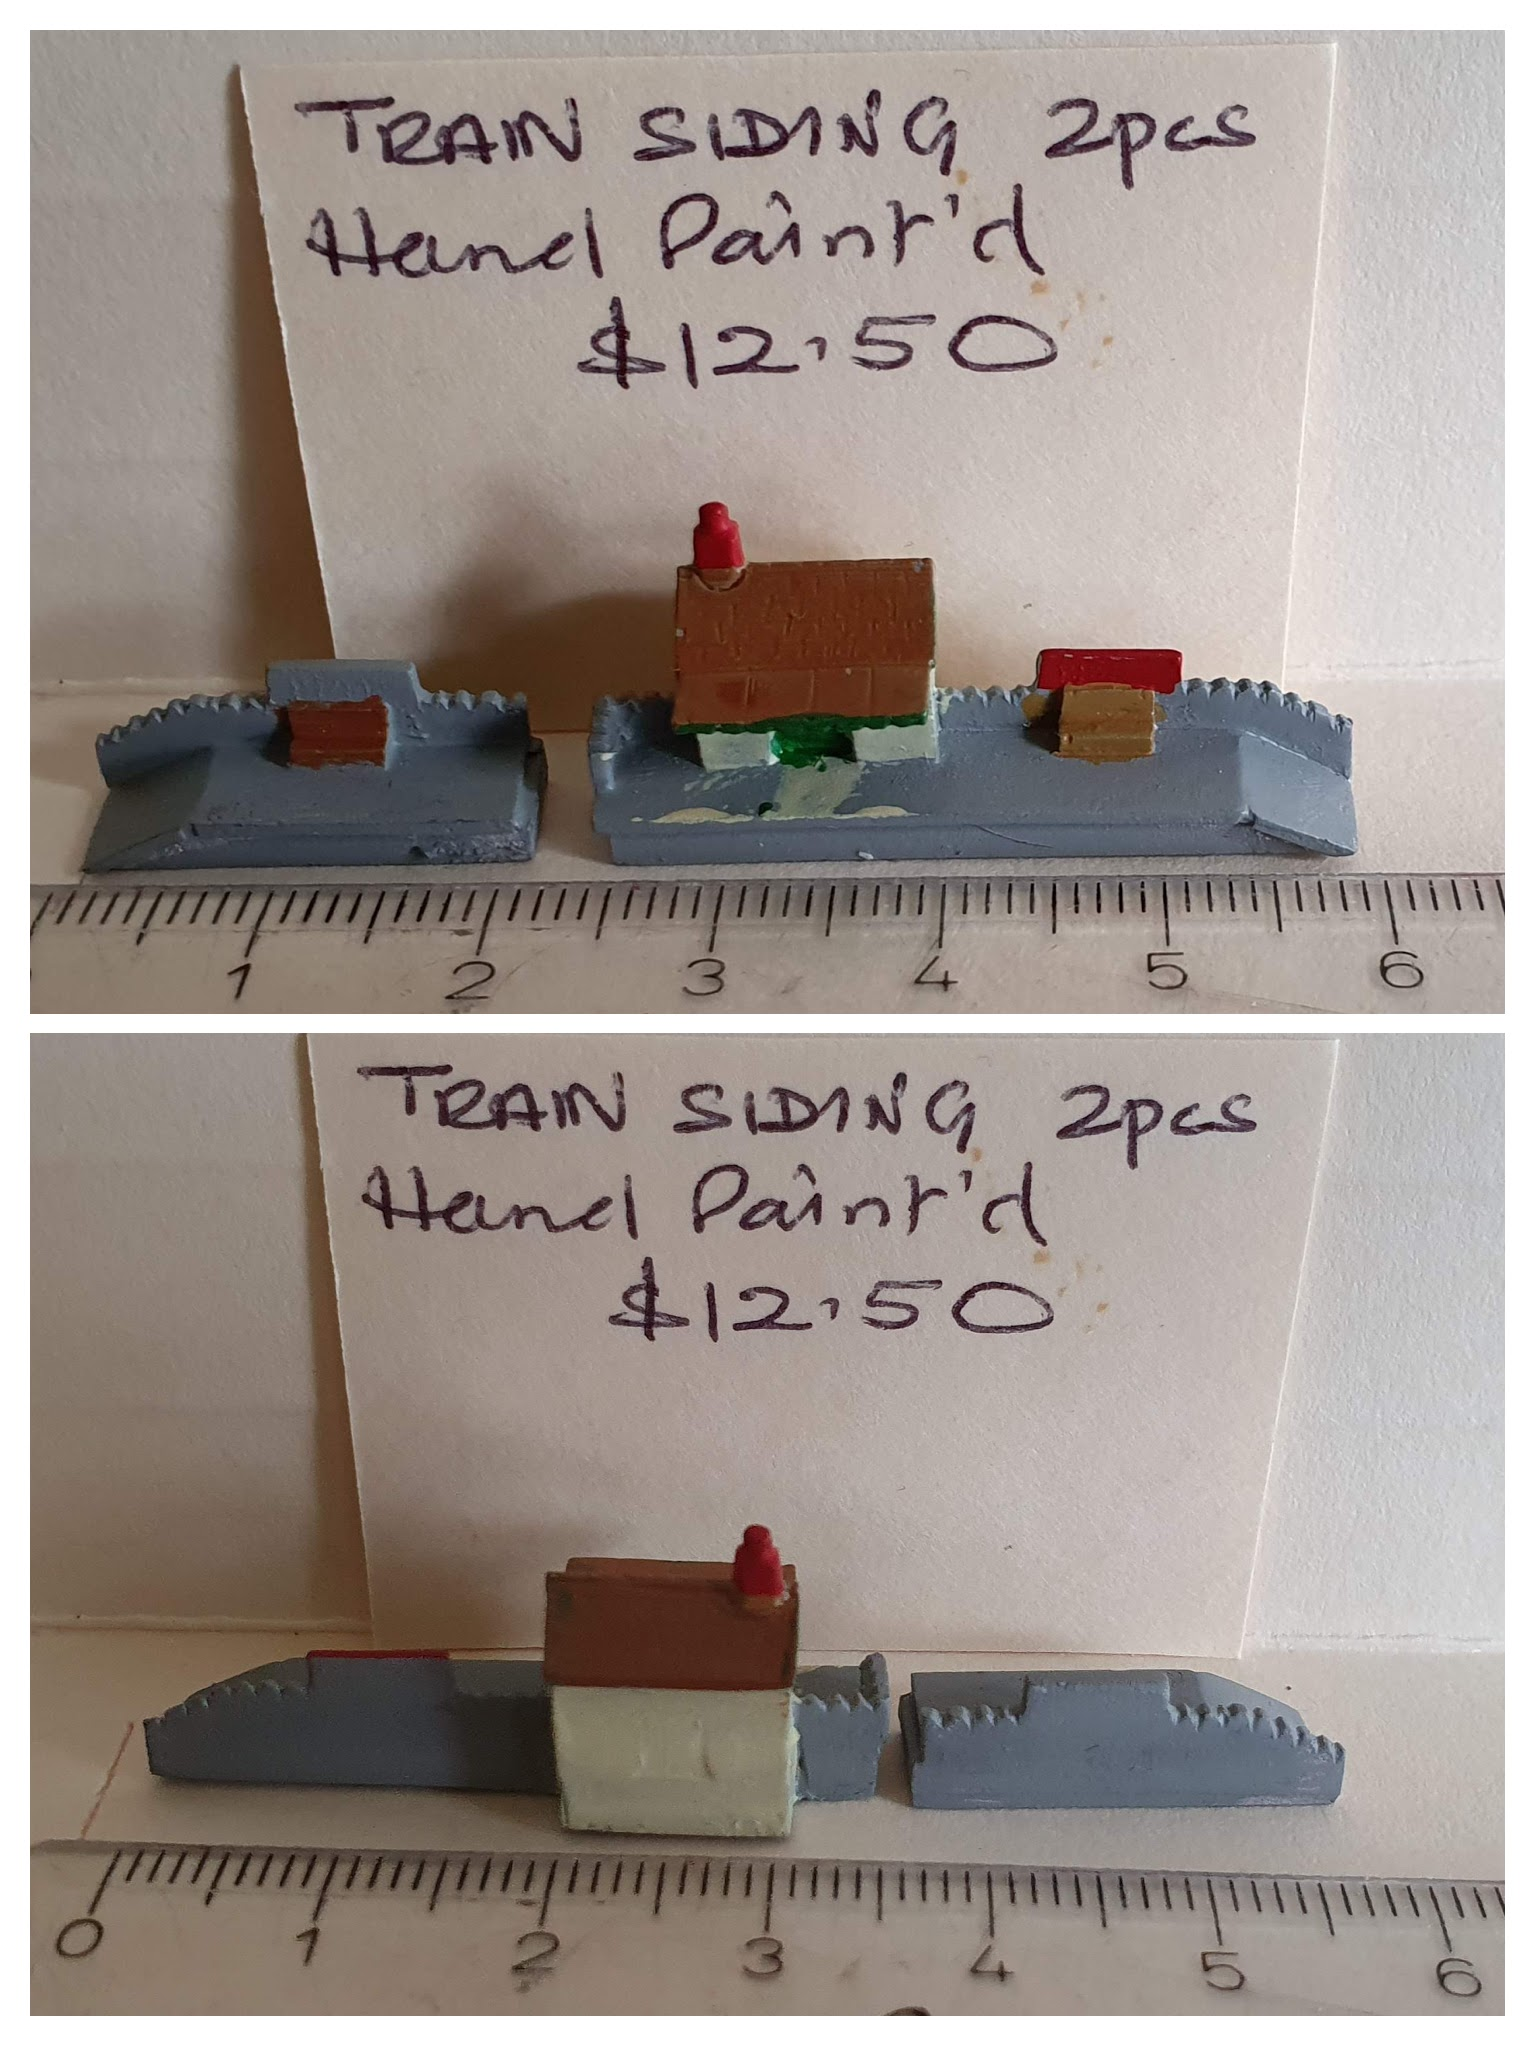 Train Siding 2 pc $12.50